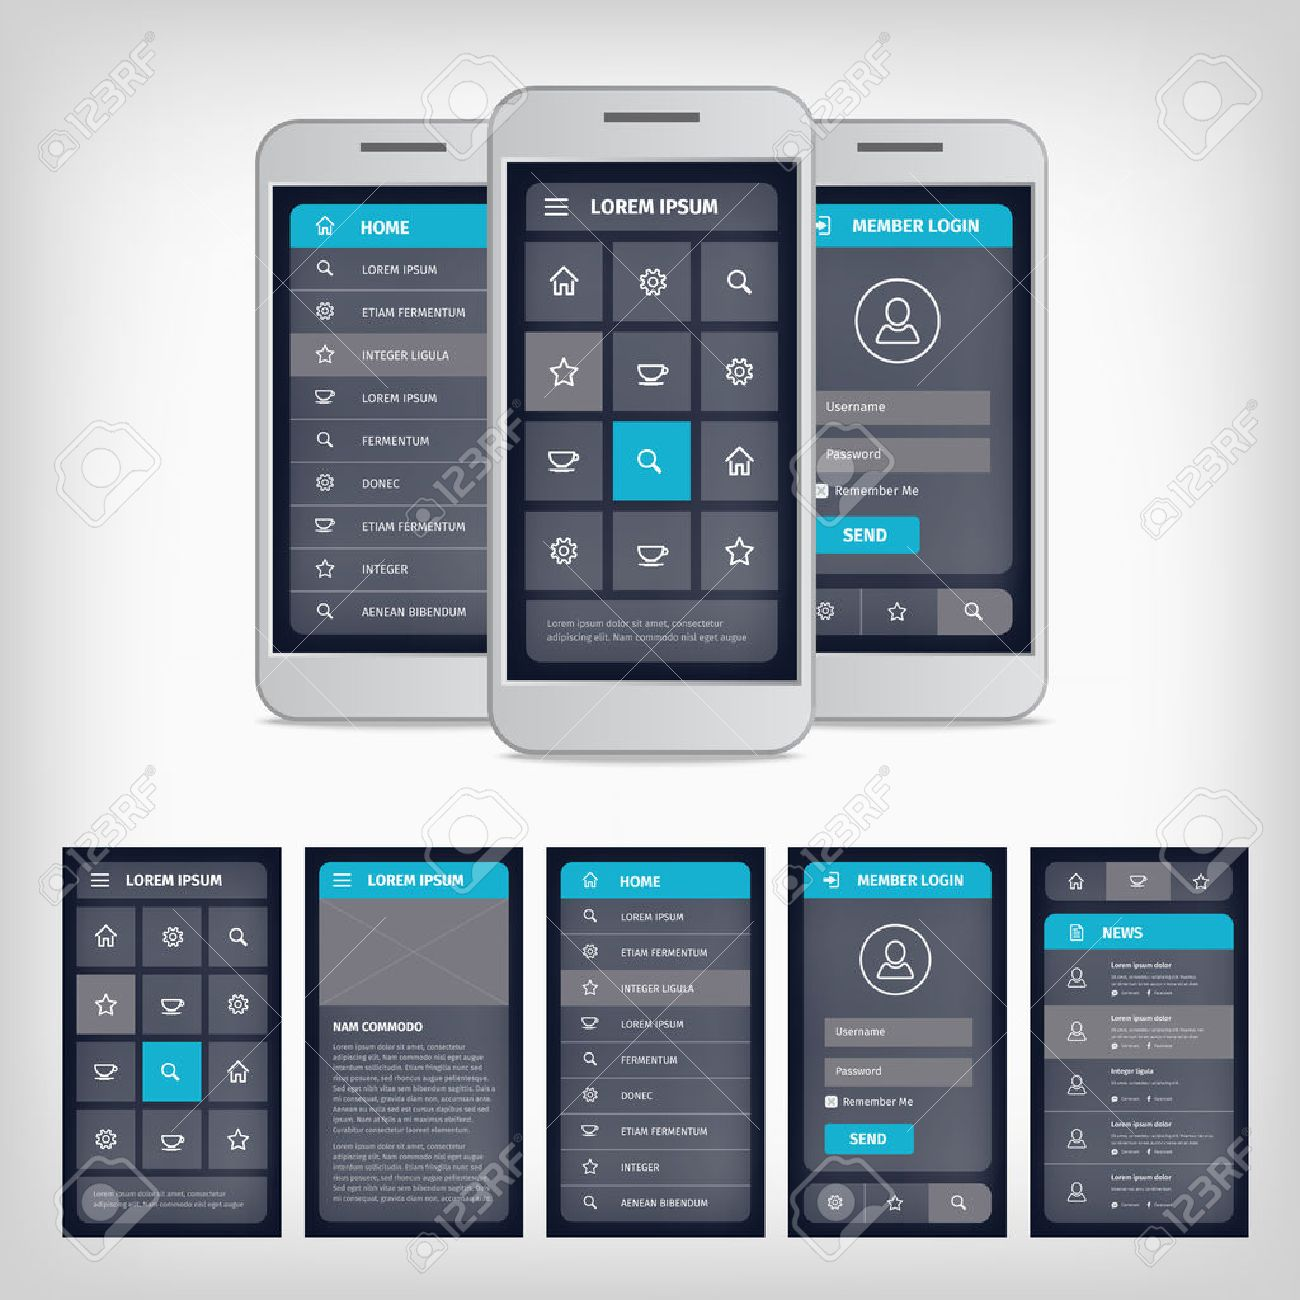 Vector Set Of Modern Flat Design Template Mobile User Interface - Mobile app design templates